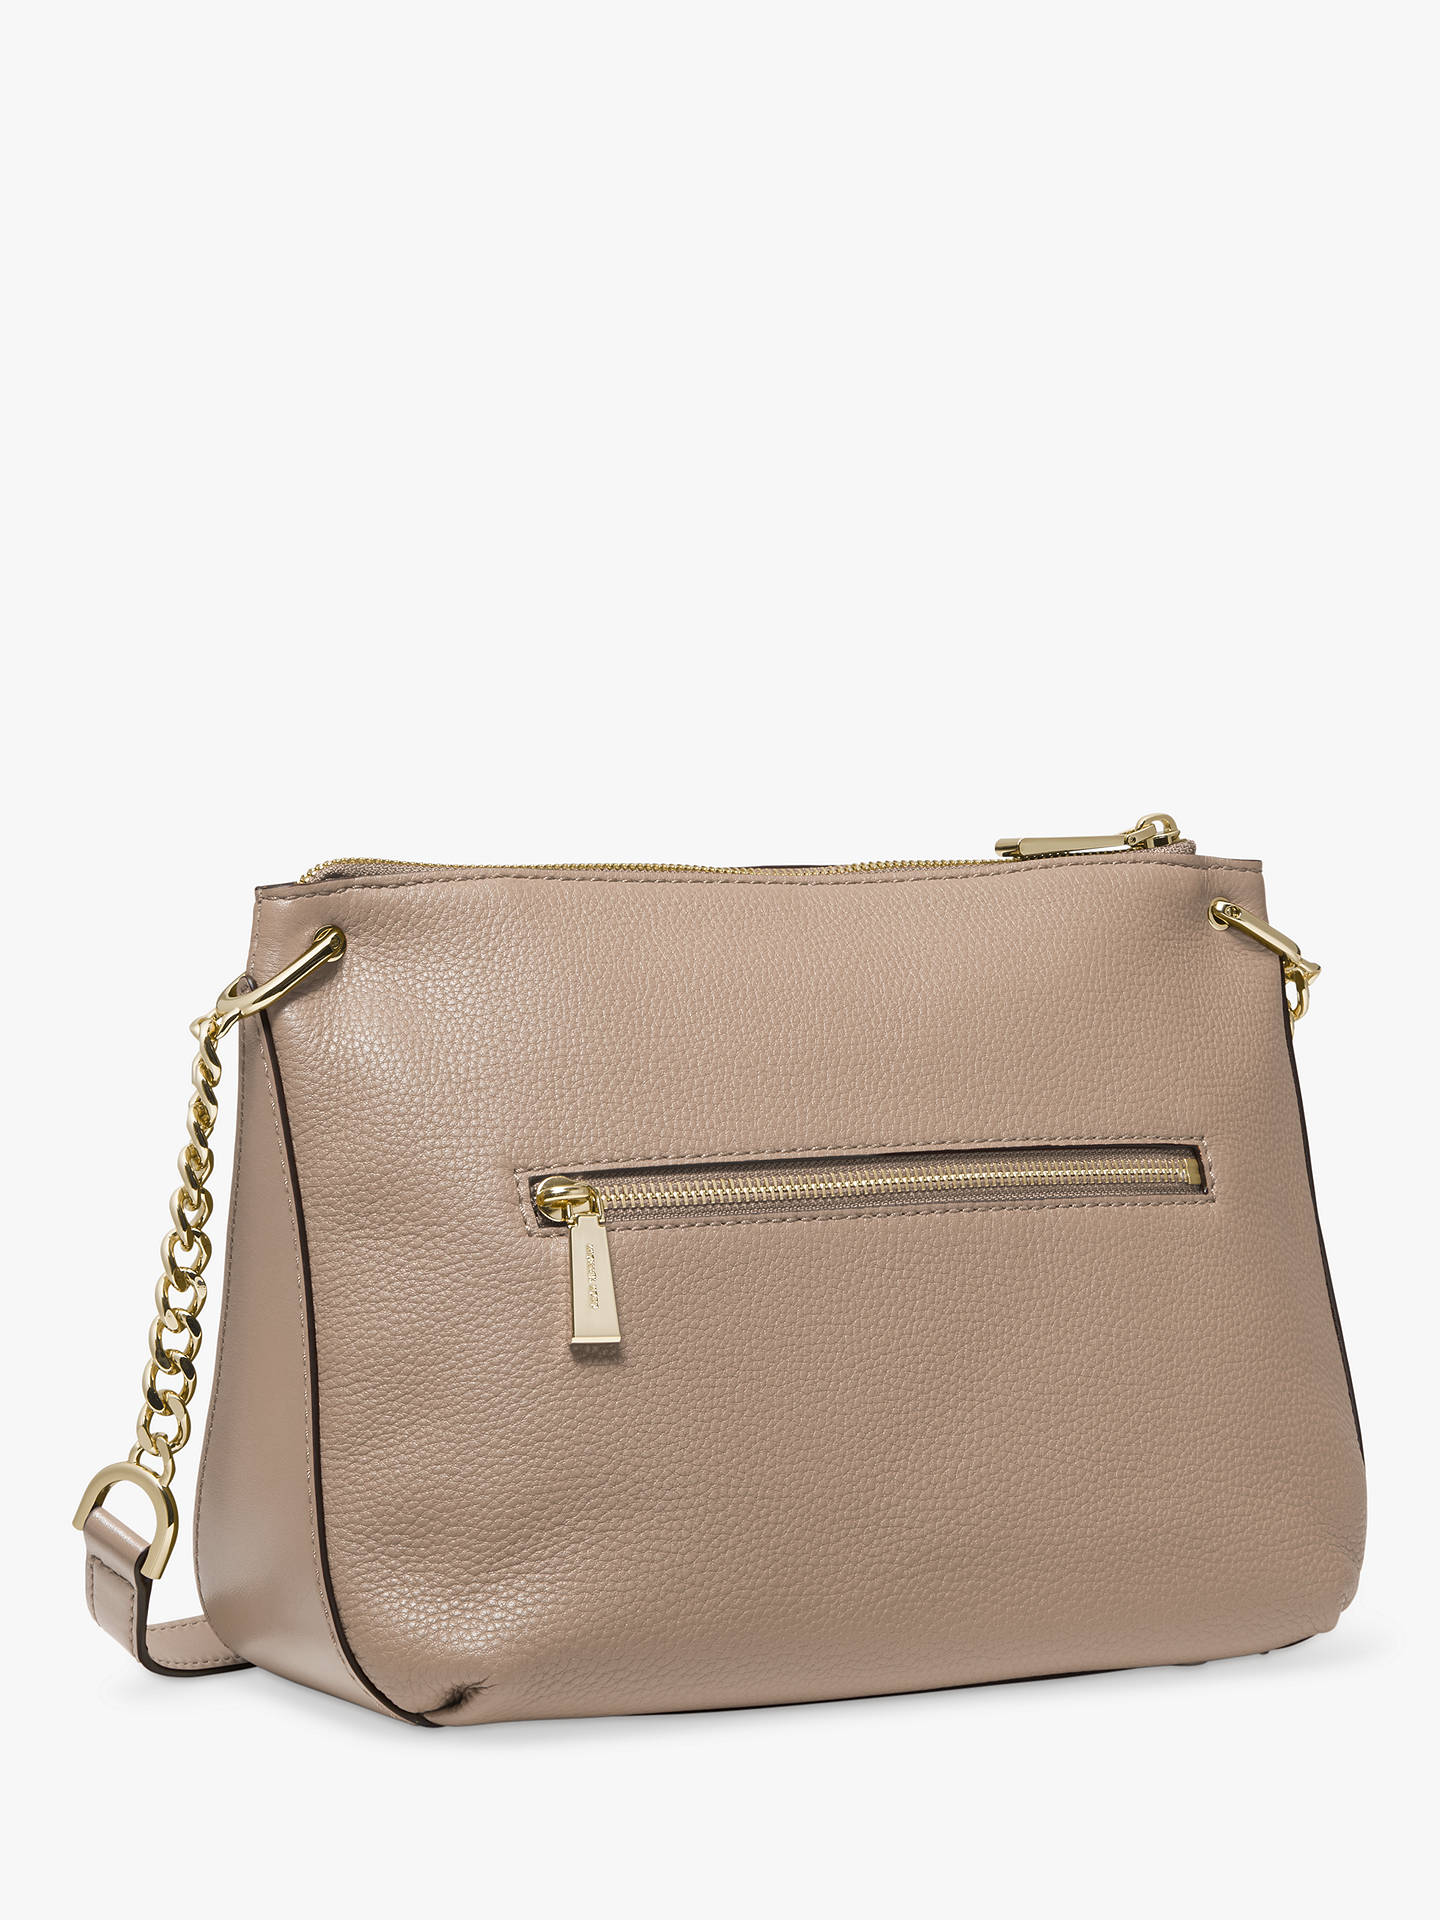 7fded4adedf5 MICHAEL Michael Kors Lillie Large Leather Messenger Bag at John ...